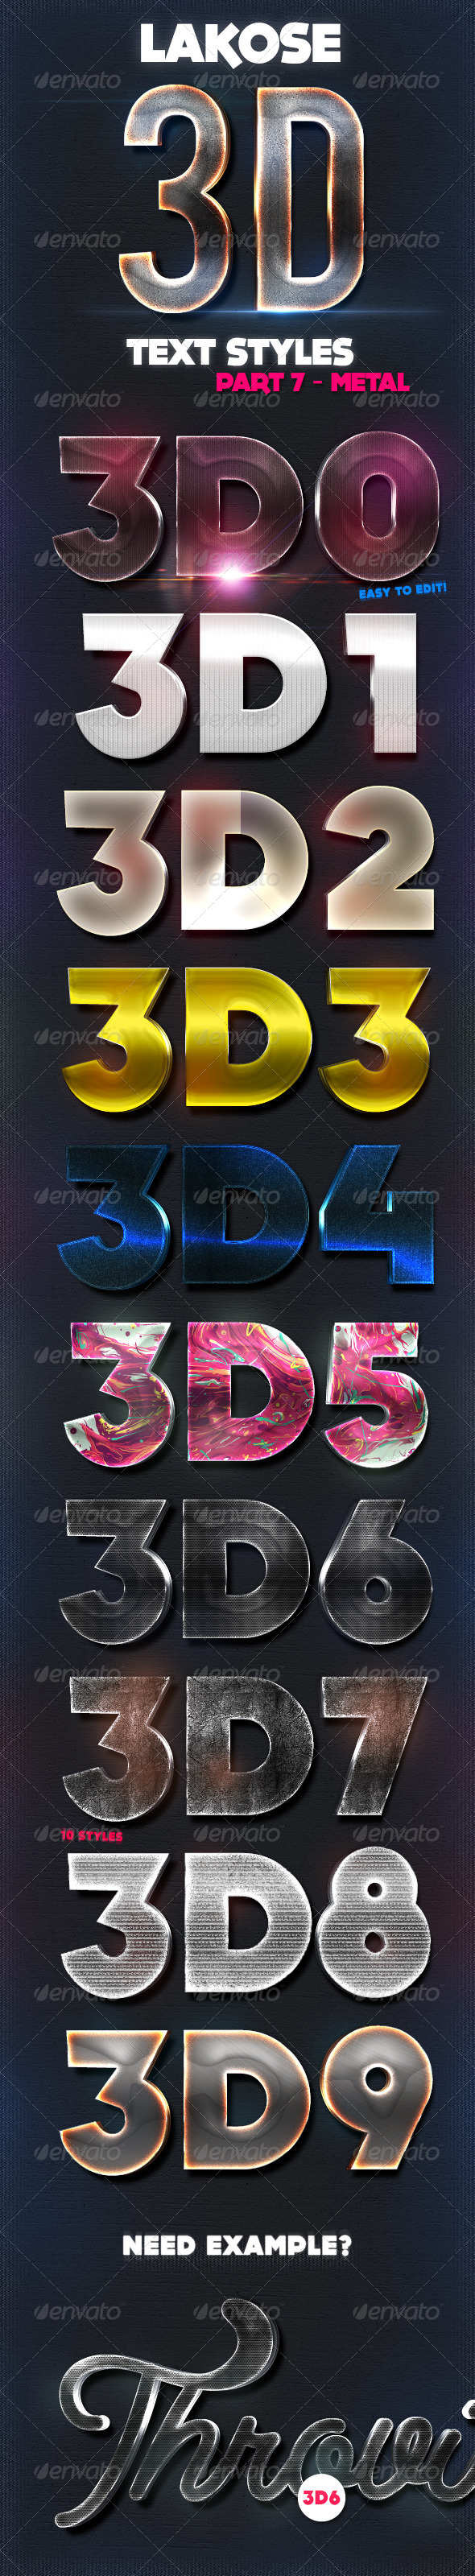 GraphicRiver Edit Lakose 3D Text Styles Part 7 8712661